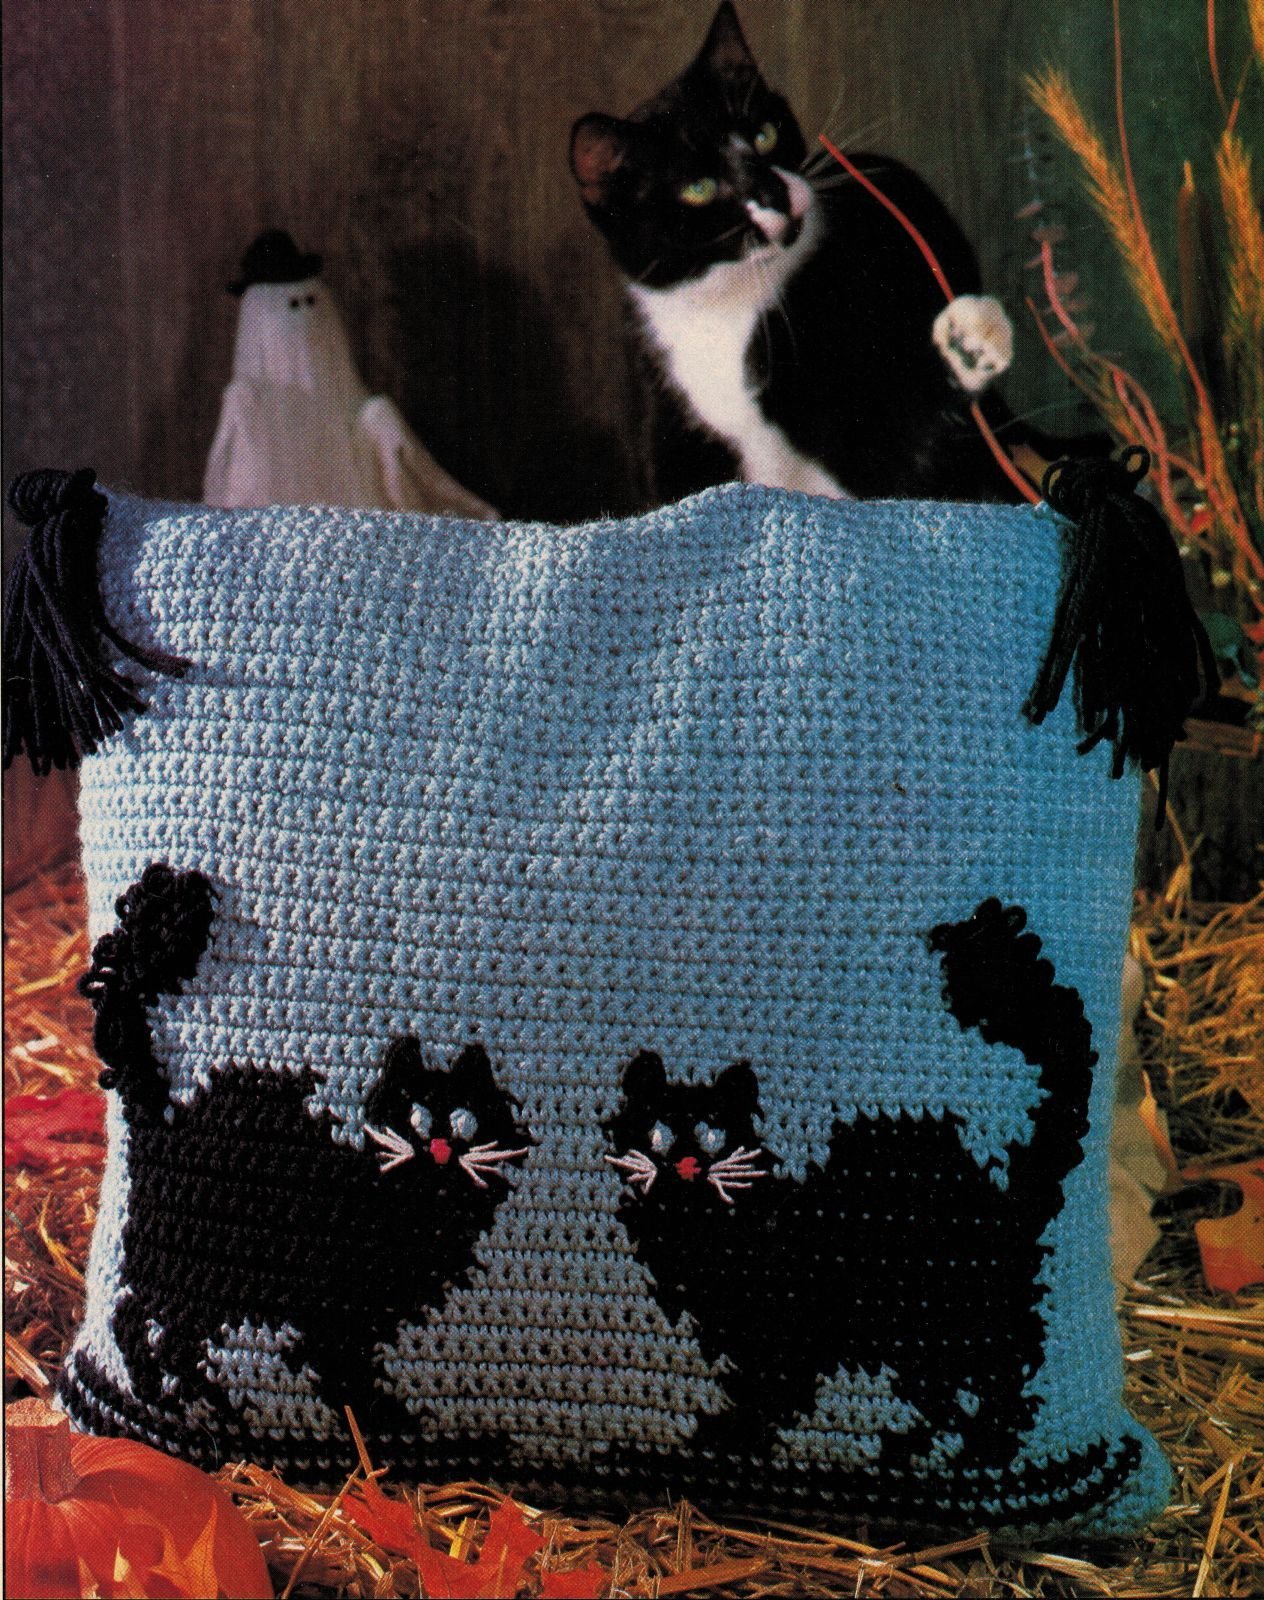 Primary image for 2 Black Cats Pillow Kitty Afghan Kool Kat Pilgrims Rug Crochet Pineapple Pattern